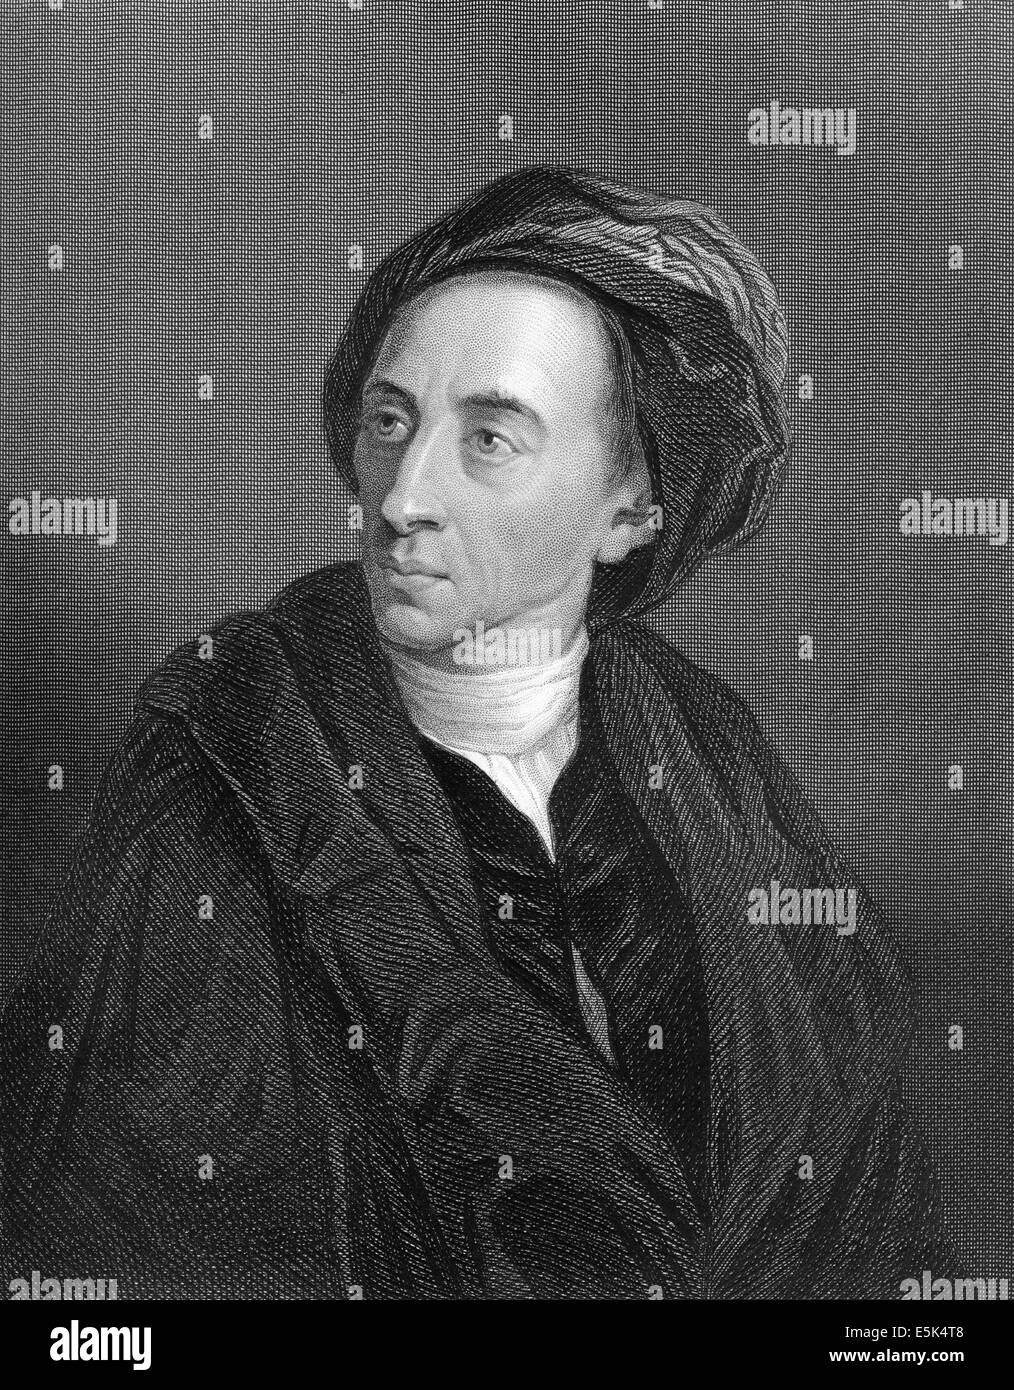 Alexander Pope, 1688 - 1744, an English poet, translator and writer of Neoclassicism, - Stock Image